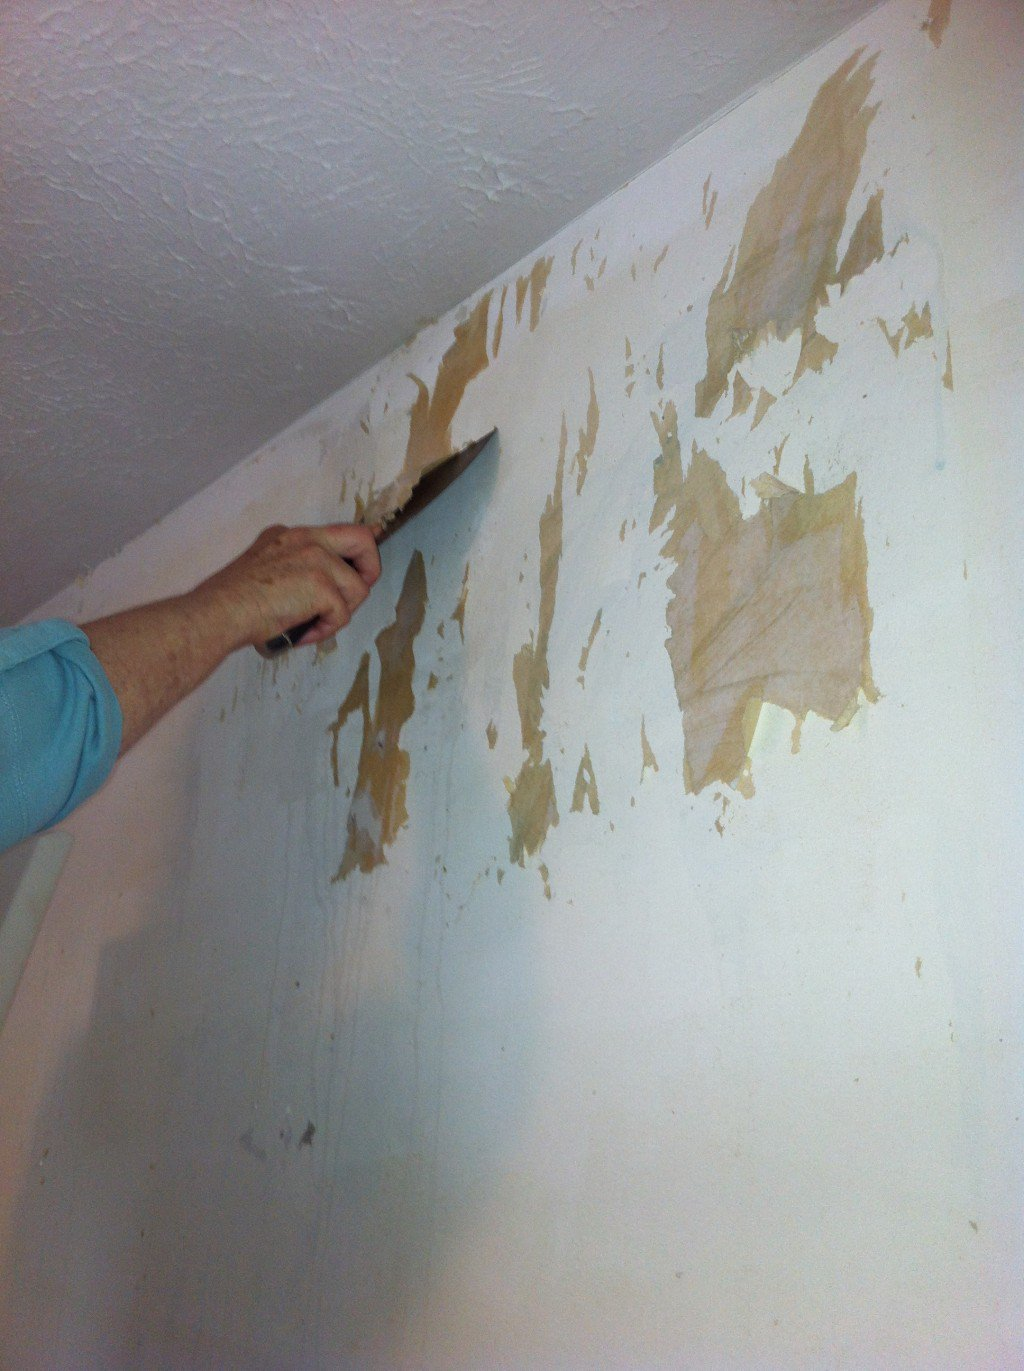 How to remove old wallpaper glue from plaster walls